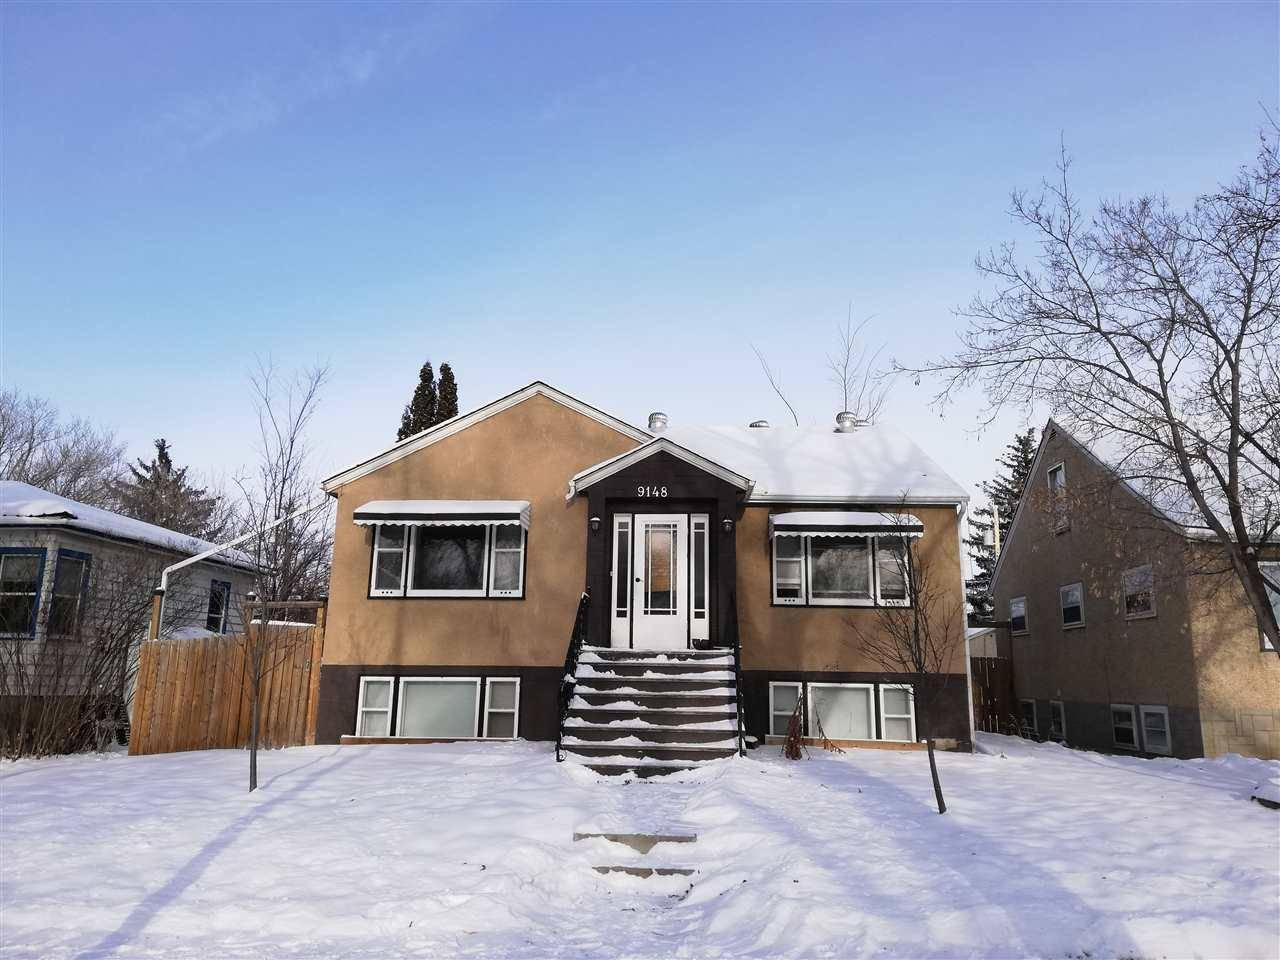 House for sale at 9148 81 Ave Nw Edmonton Alberta - MLS: E4188173